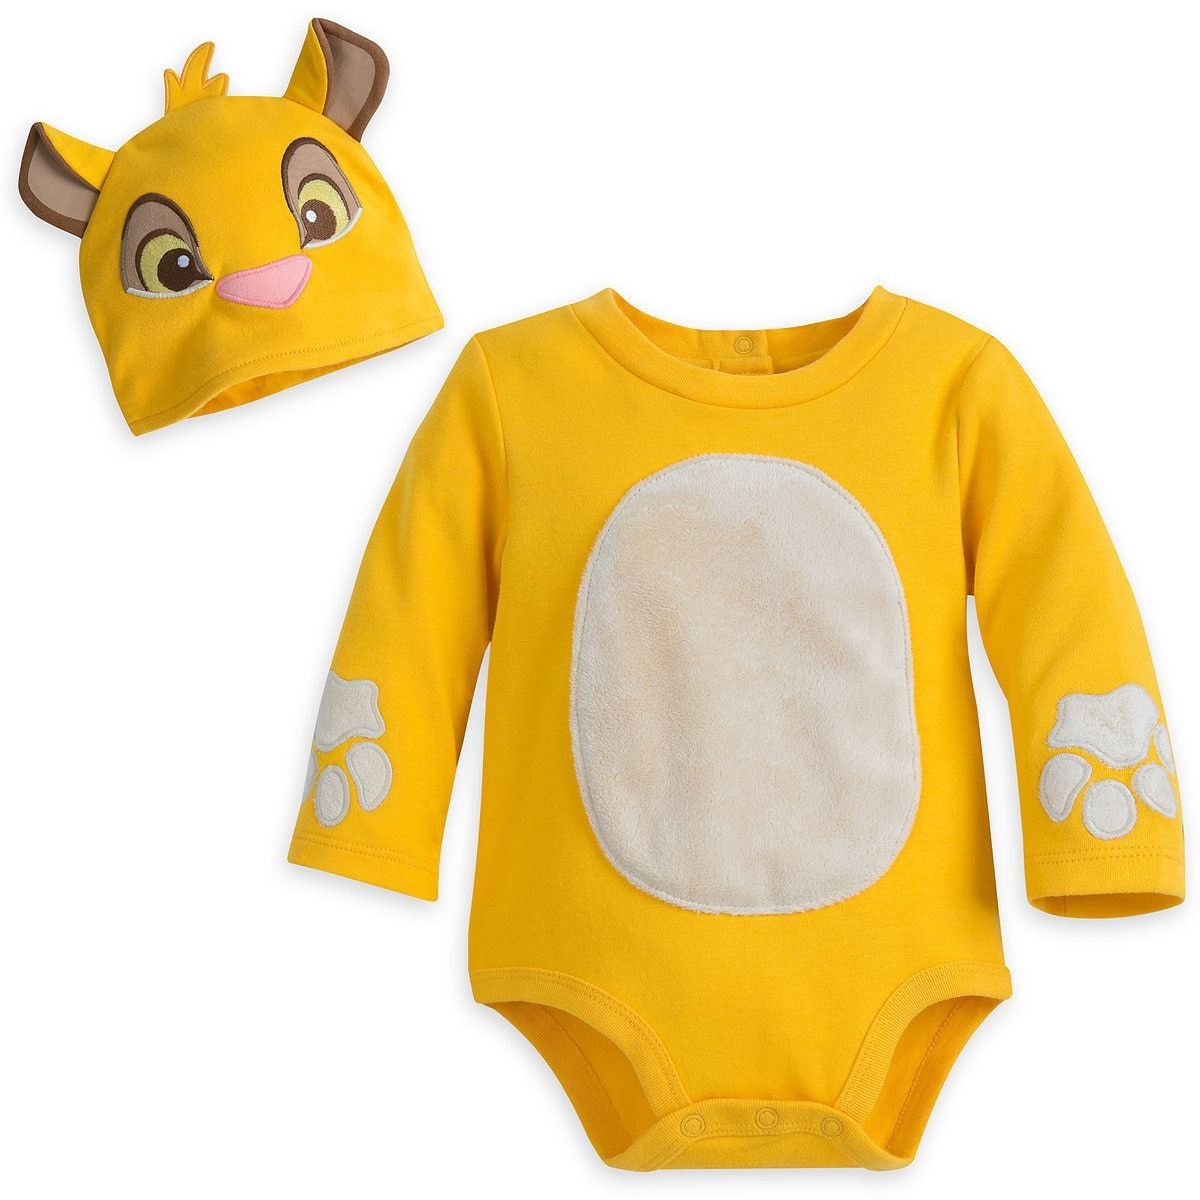 33fd2c79d Product Image of Simba Costume Bodysuit for Baby # 1